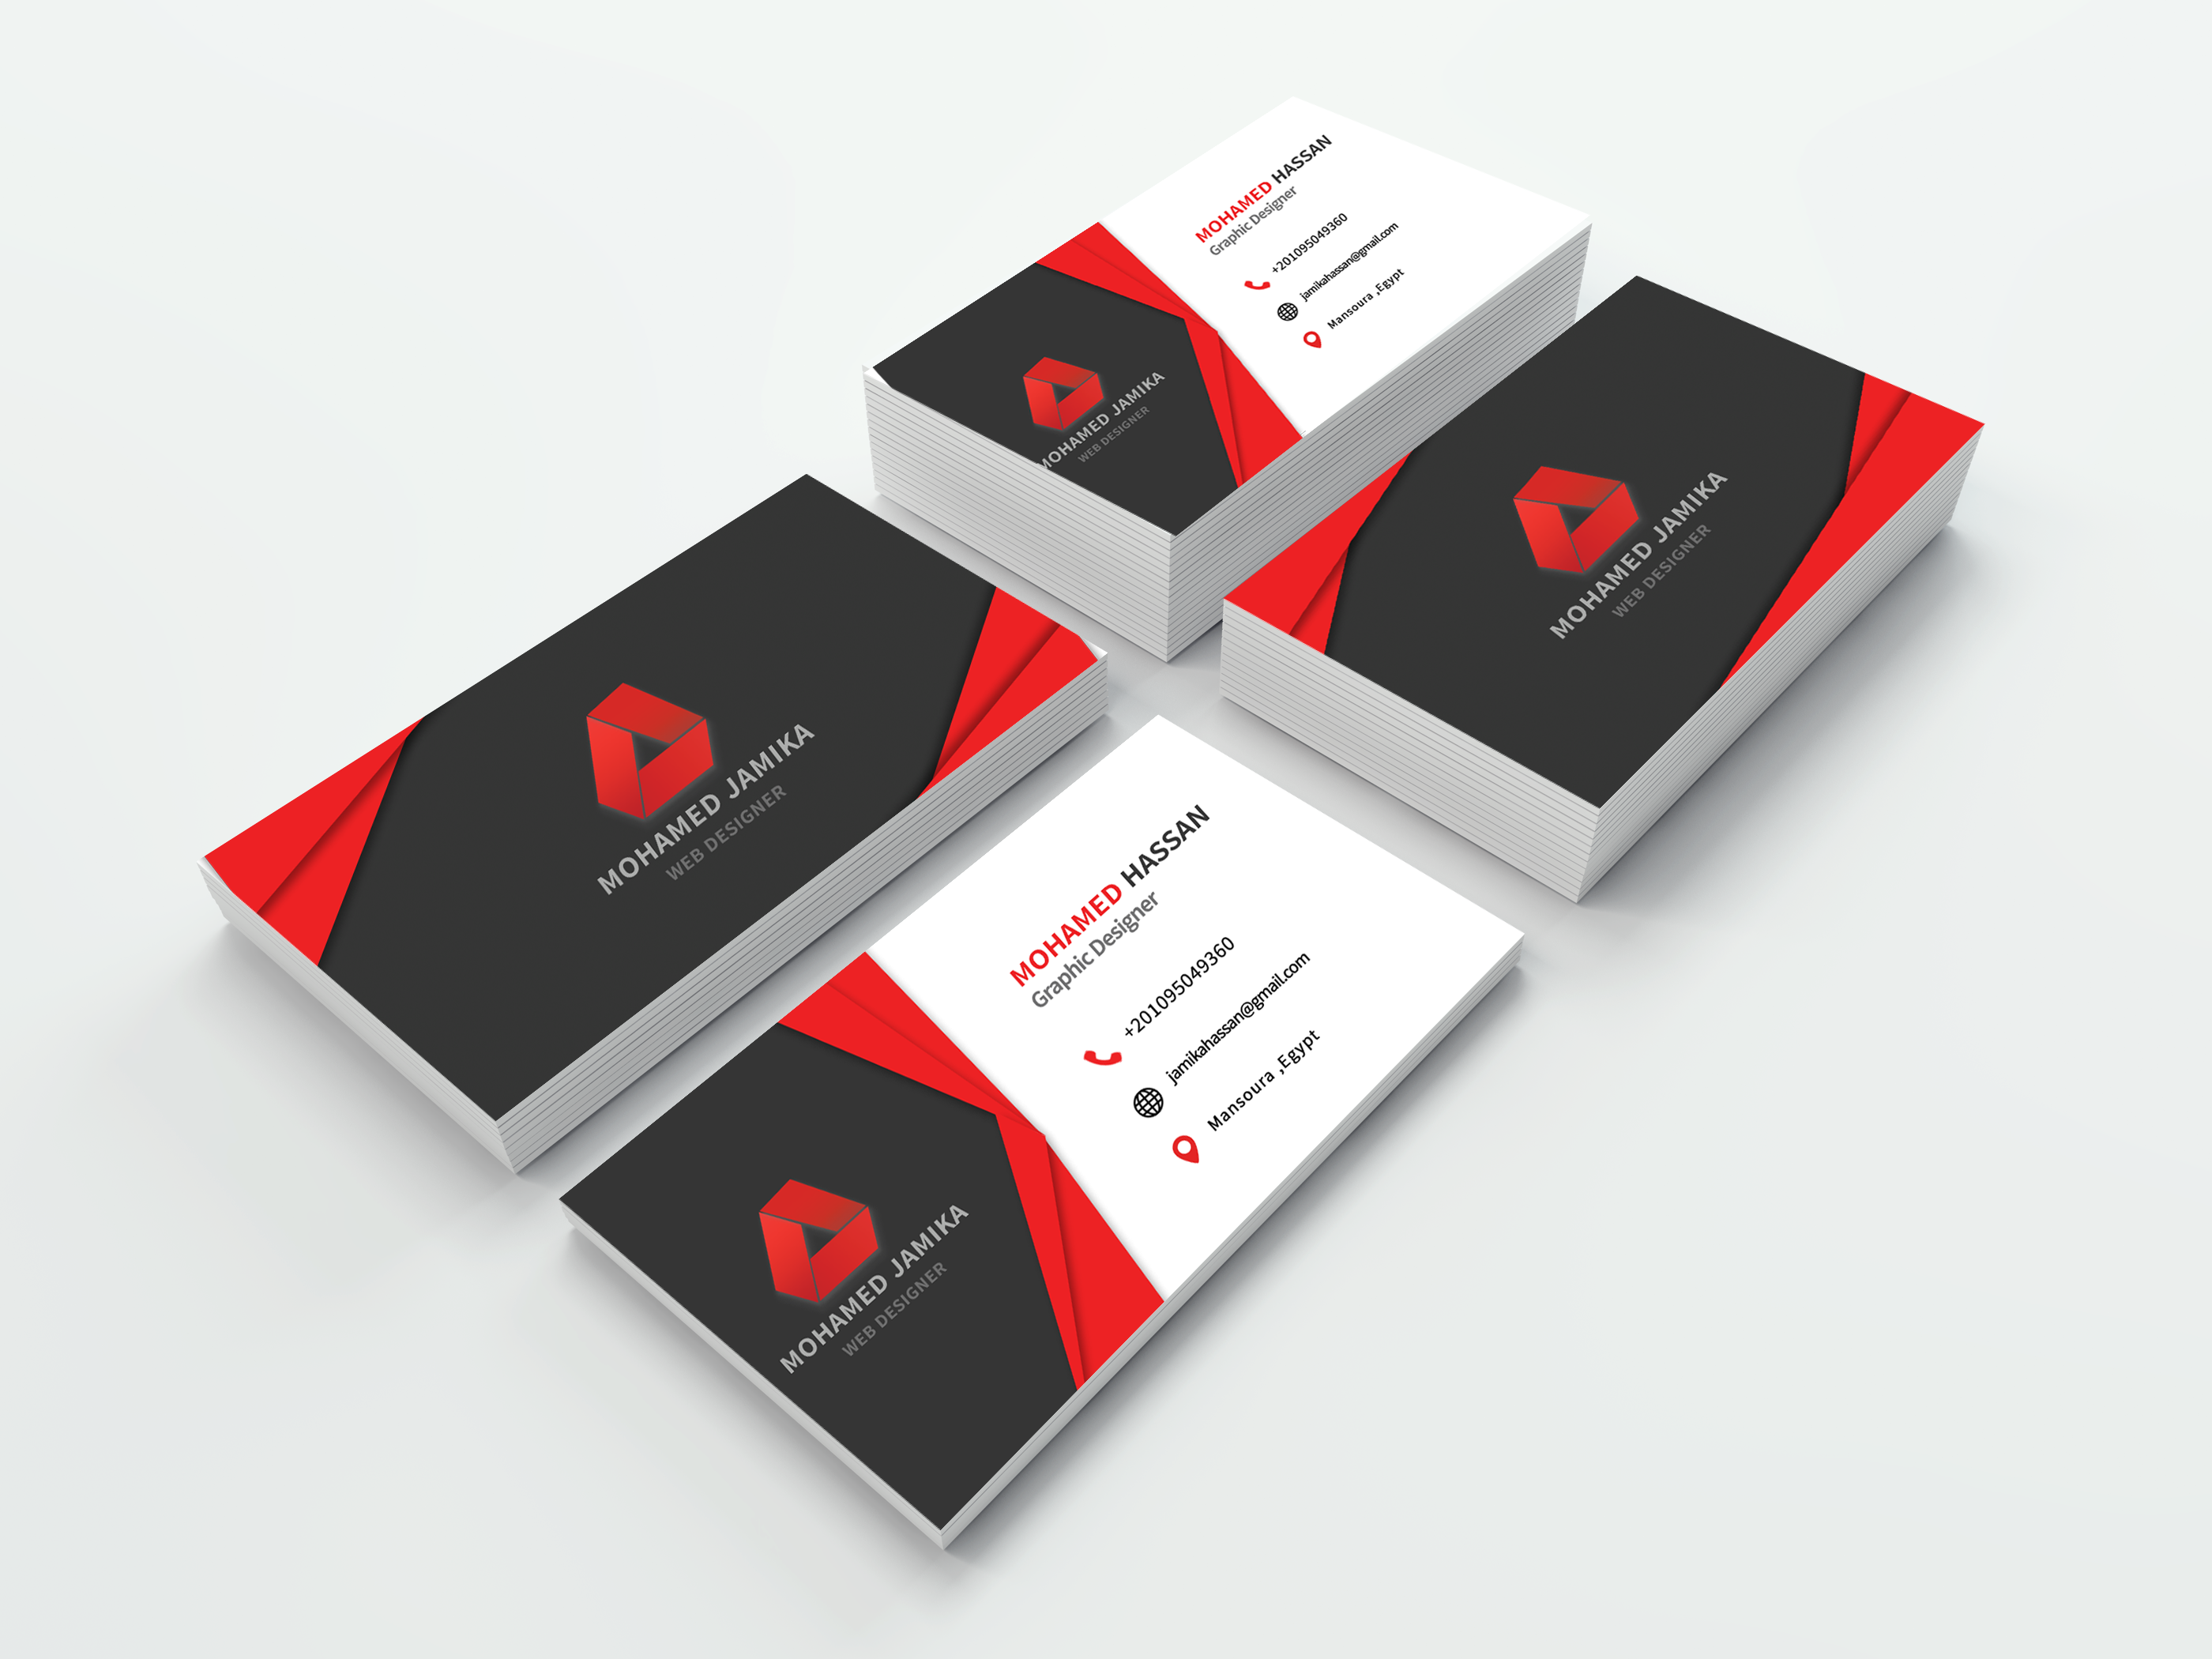 profeesional business card design